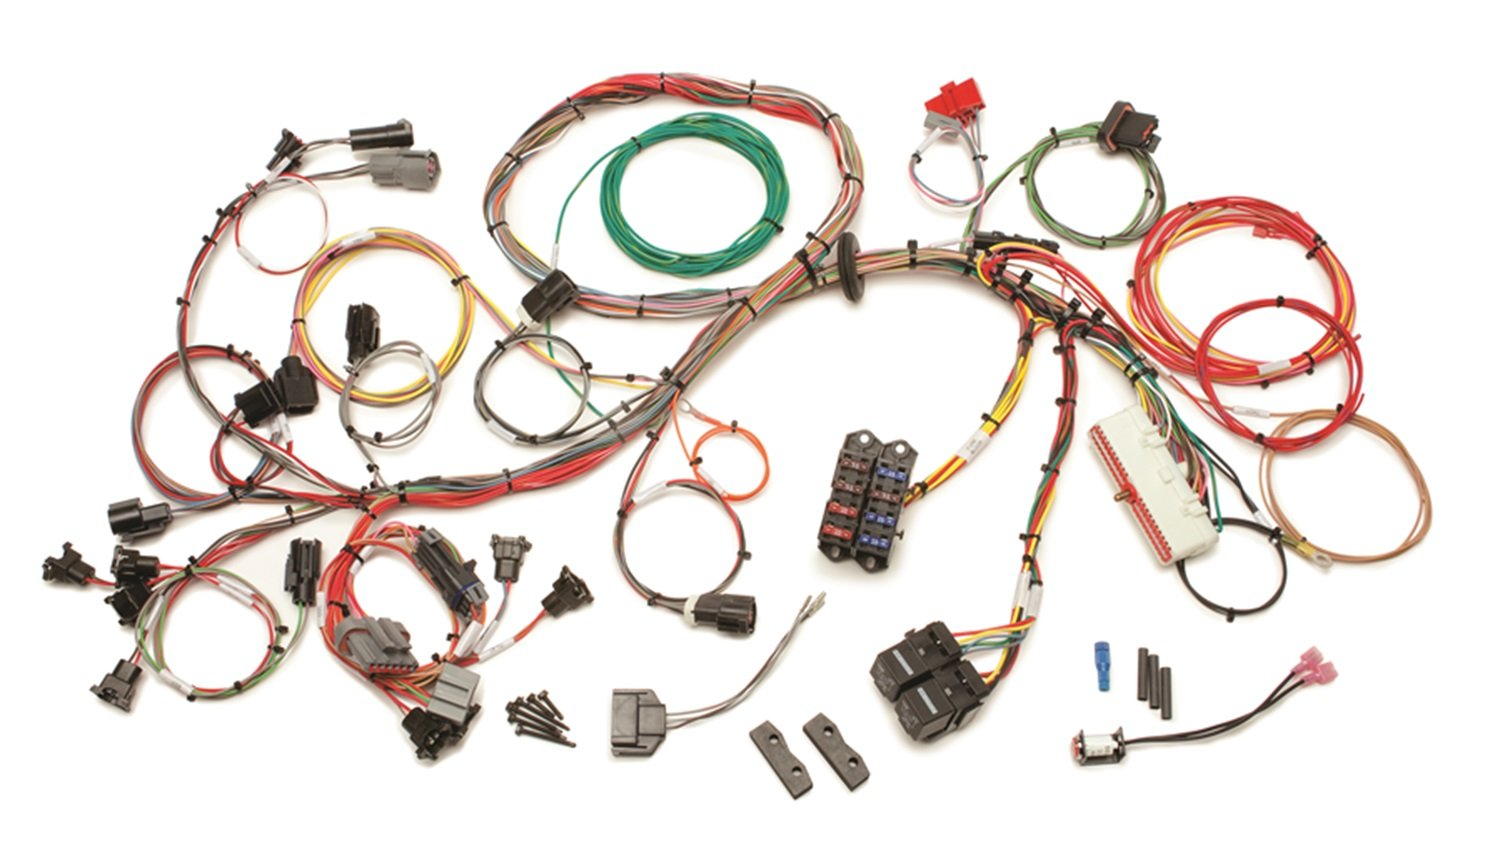 71UX1IBfleL._SL1500_ amazon com painless 60510 5 0l wiring harness automotive ford wiring harness at honlapkeszites.co